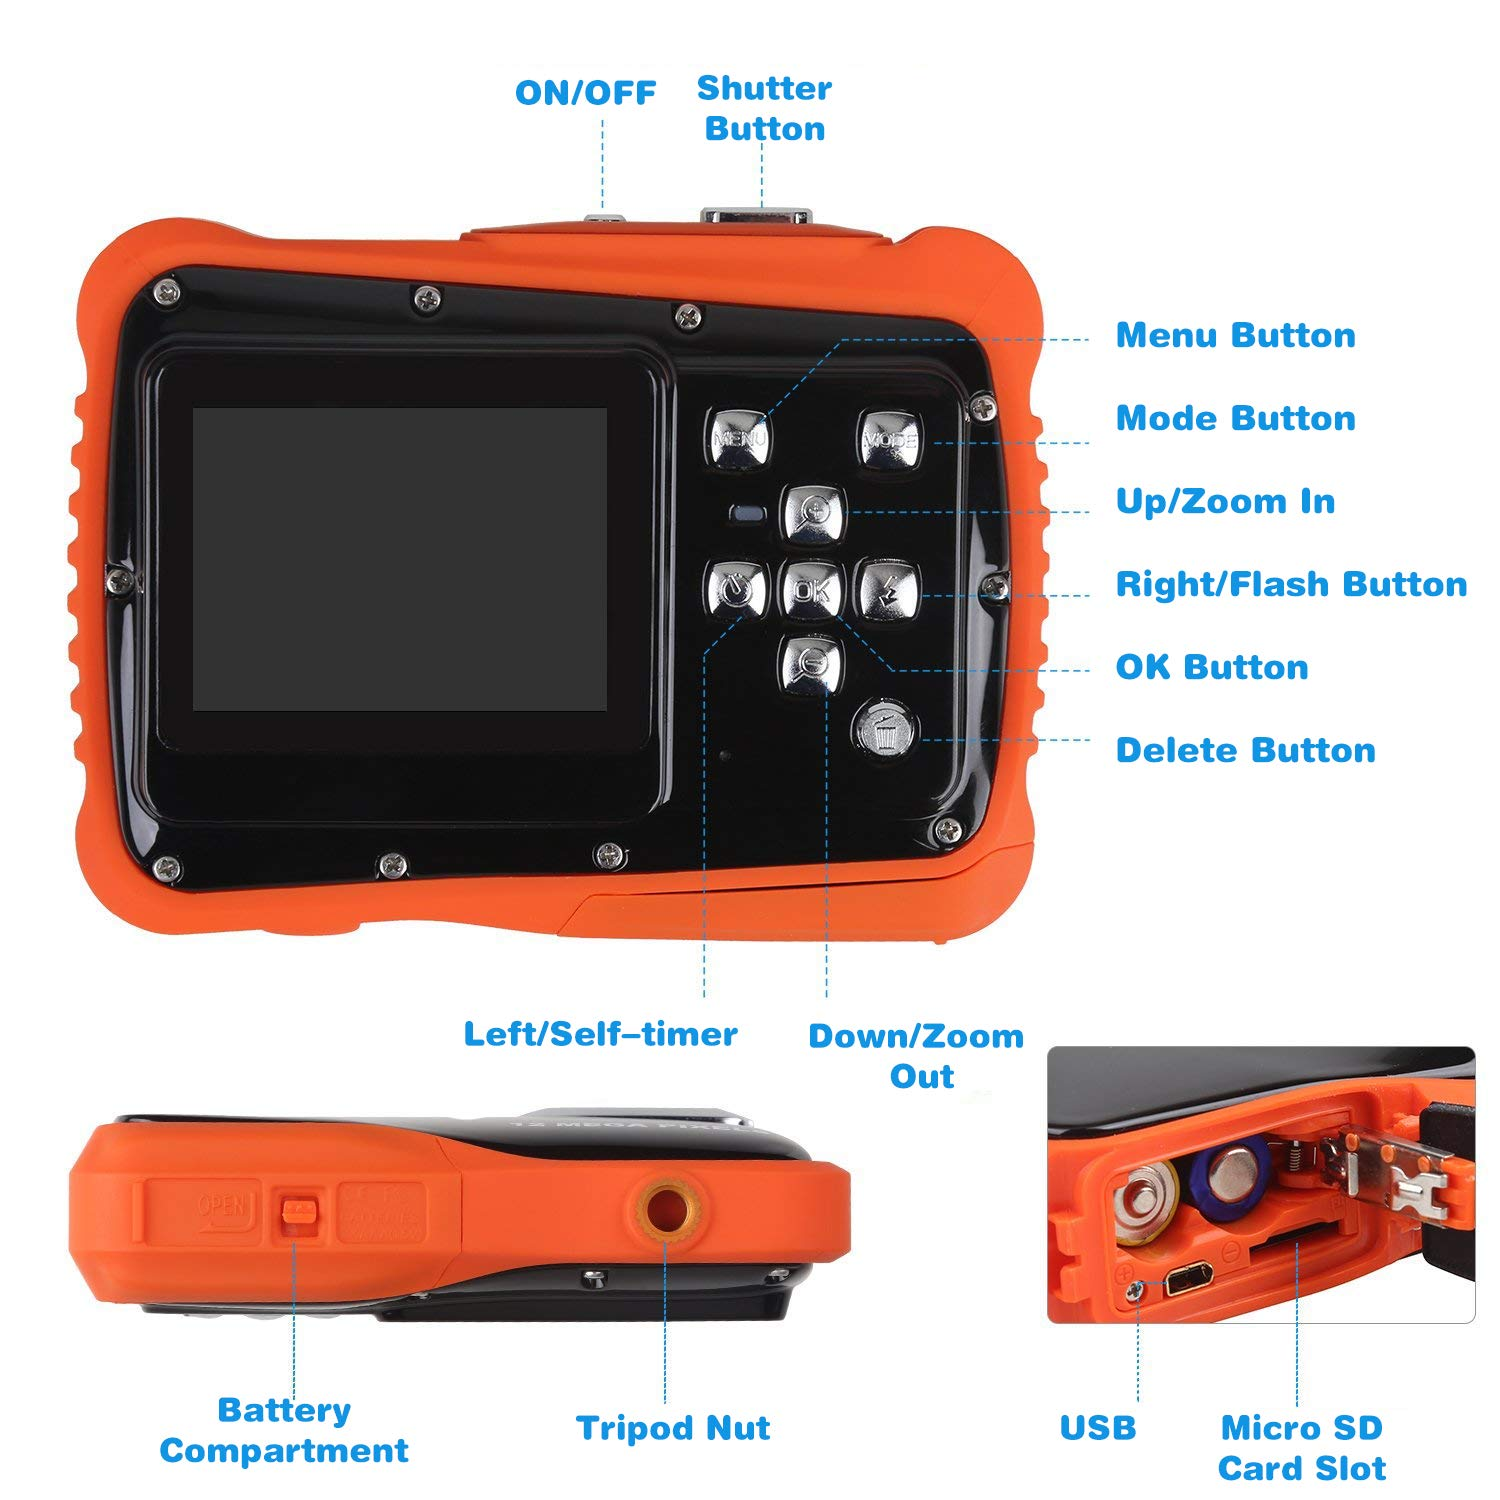 Kids Waterproof Camera Digital Camera for 4-10 Years Old Children, 12MP HD Underwater Action Camera Camcorder with 8X Digital Zoom, 2.0 Inch LCD Display, 16G Micro SD Card - Easy to Use (Orange) by tesha (Image #5)